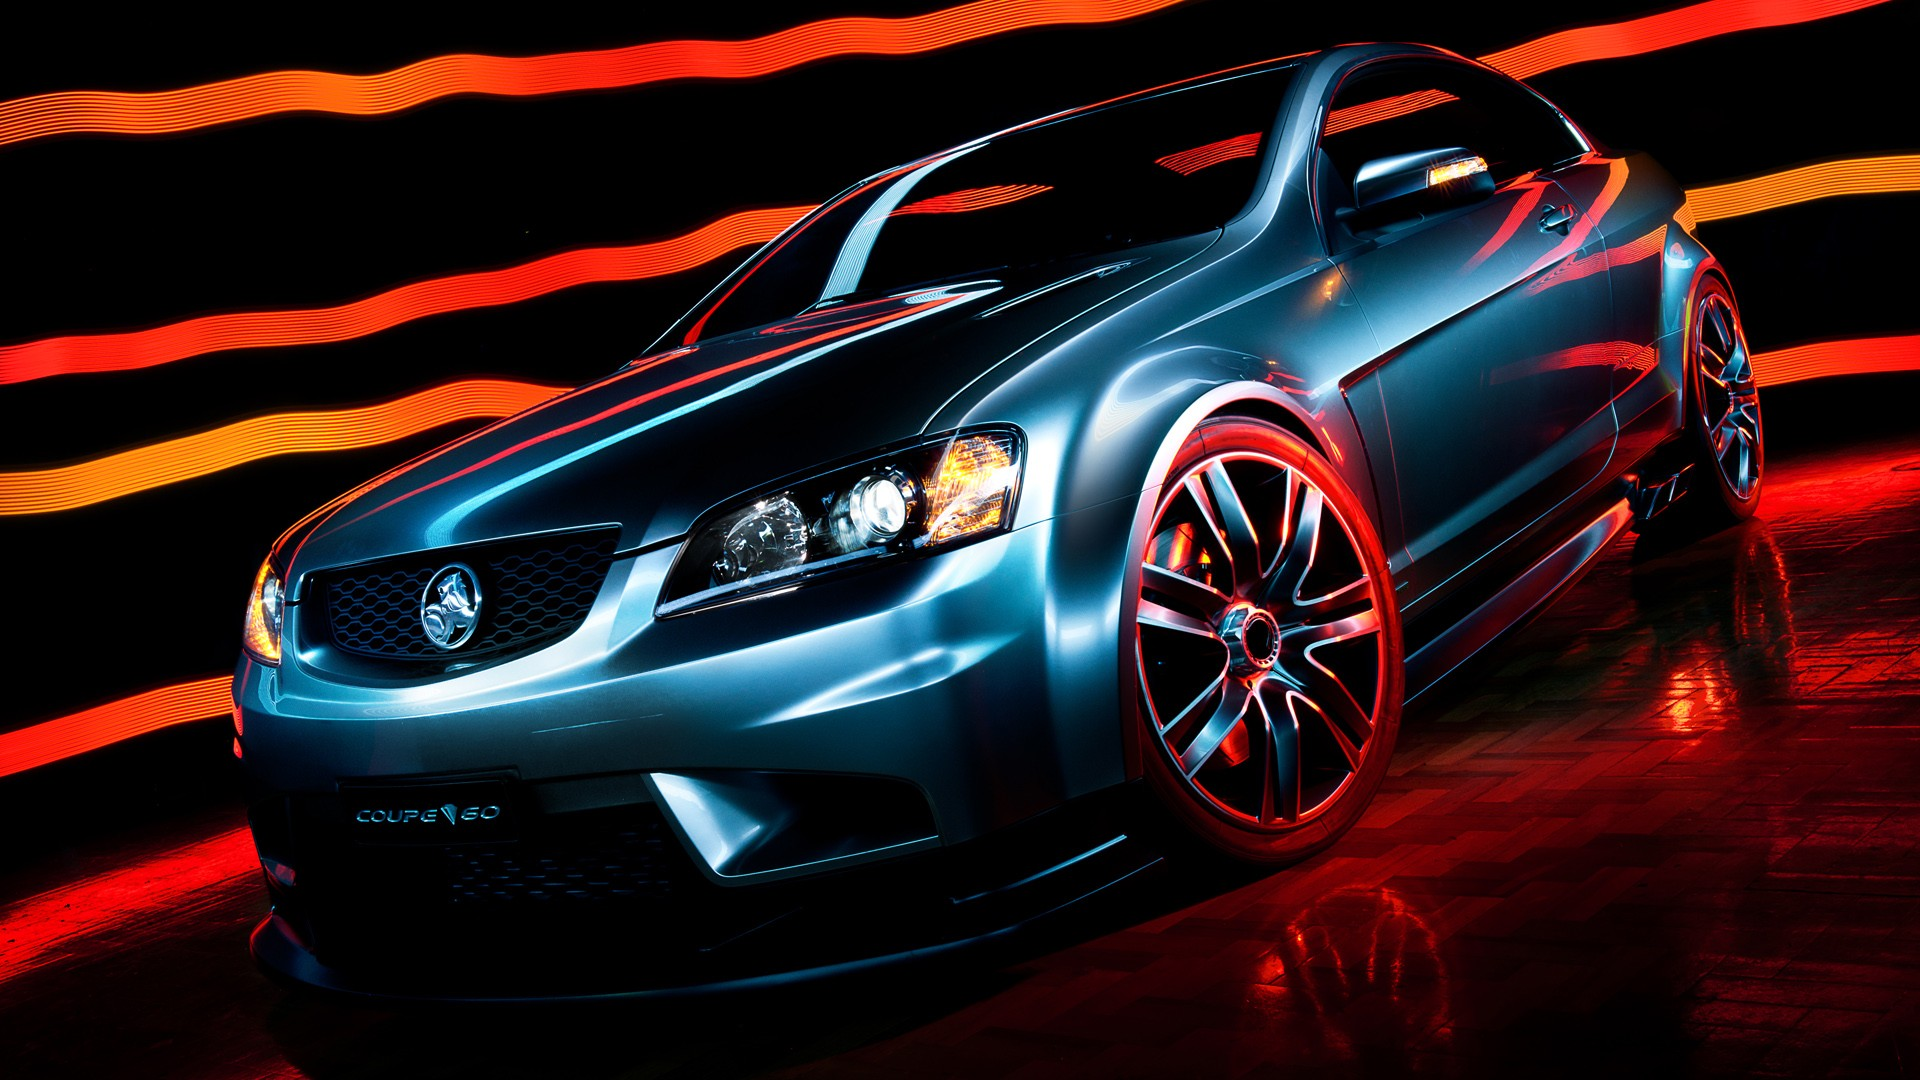 holden coupe 60 cars concept painting light 1080 1920 hd wallpapers photography troy witte awesome 1366 1600 hdcarwallpapers